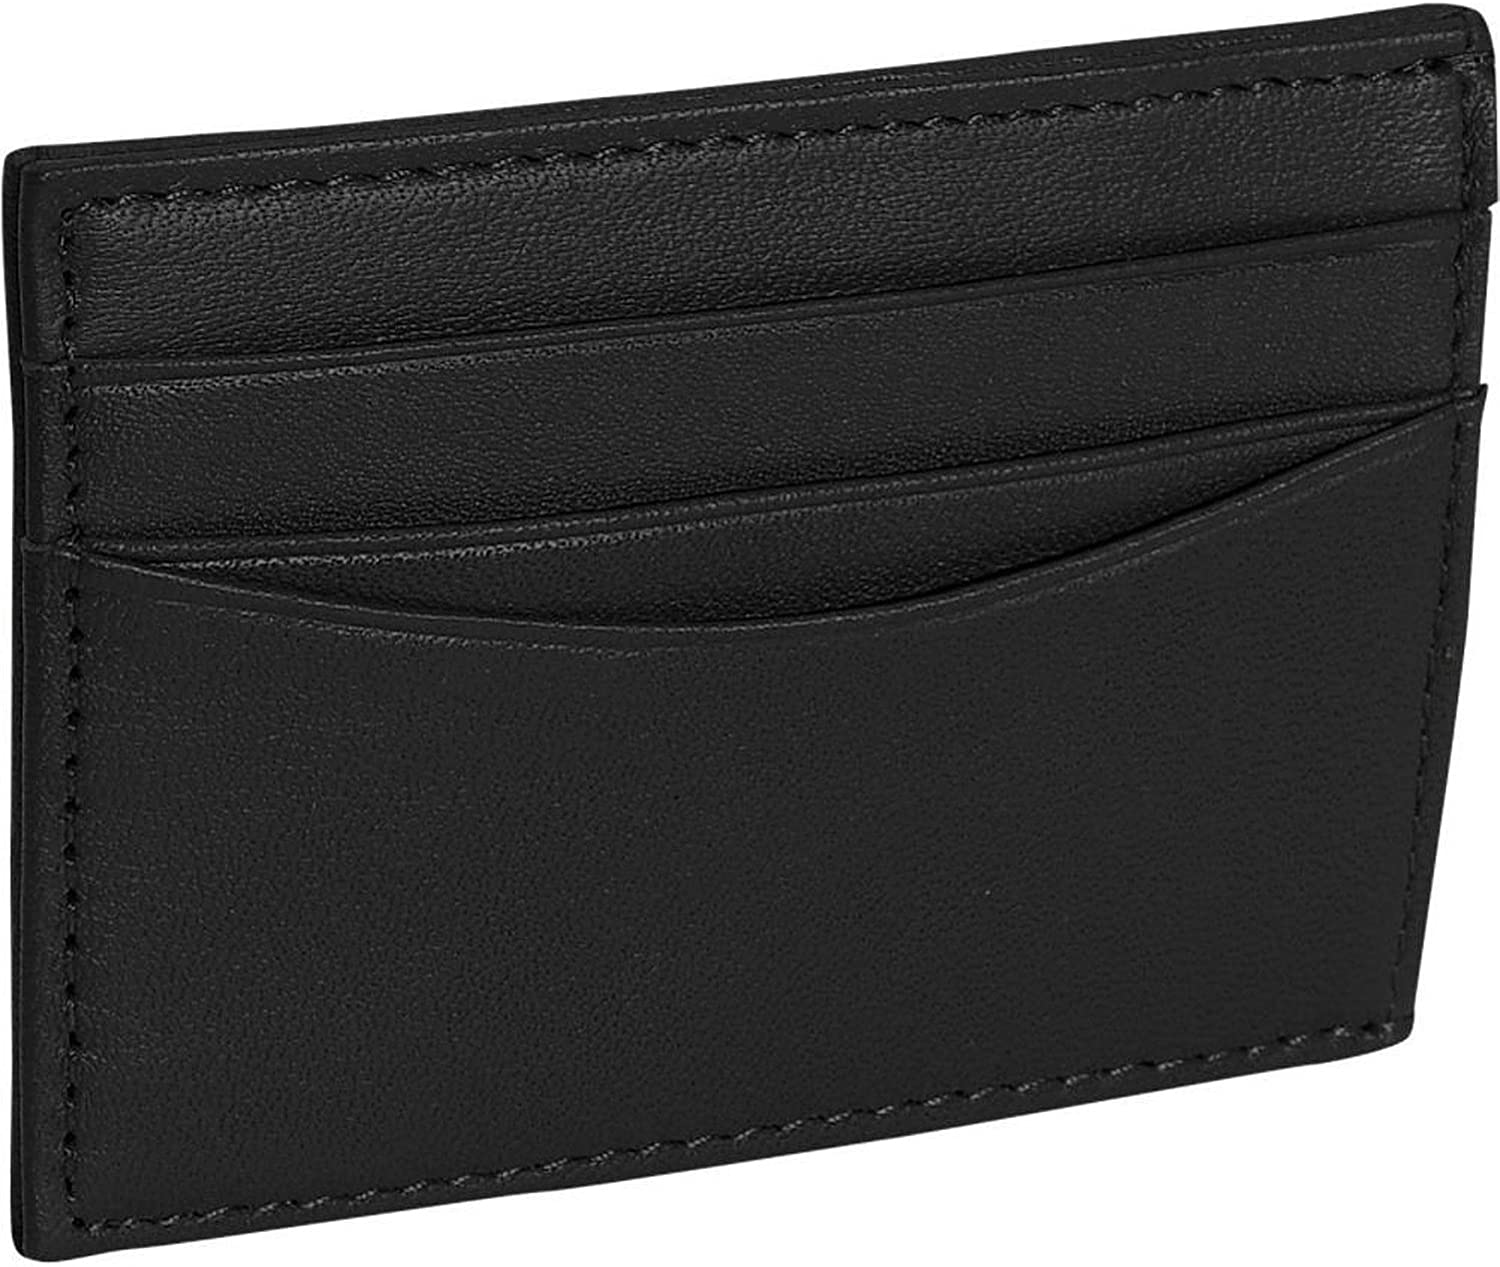 Royce Leather Men's Top Grain Nappa Leather Magnetic Money Clip Wallet And Cr.